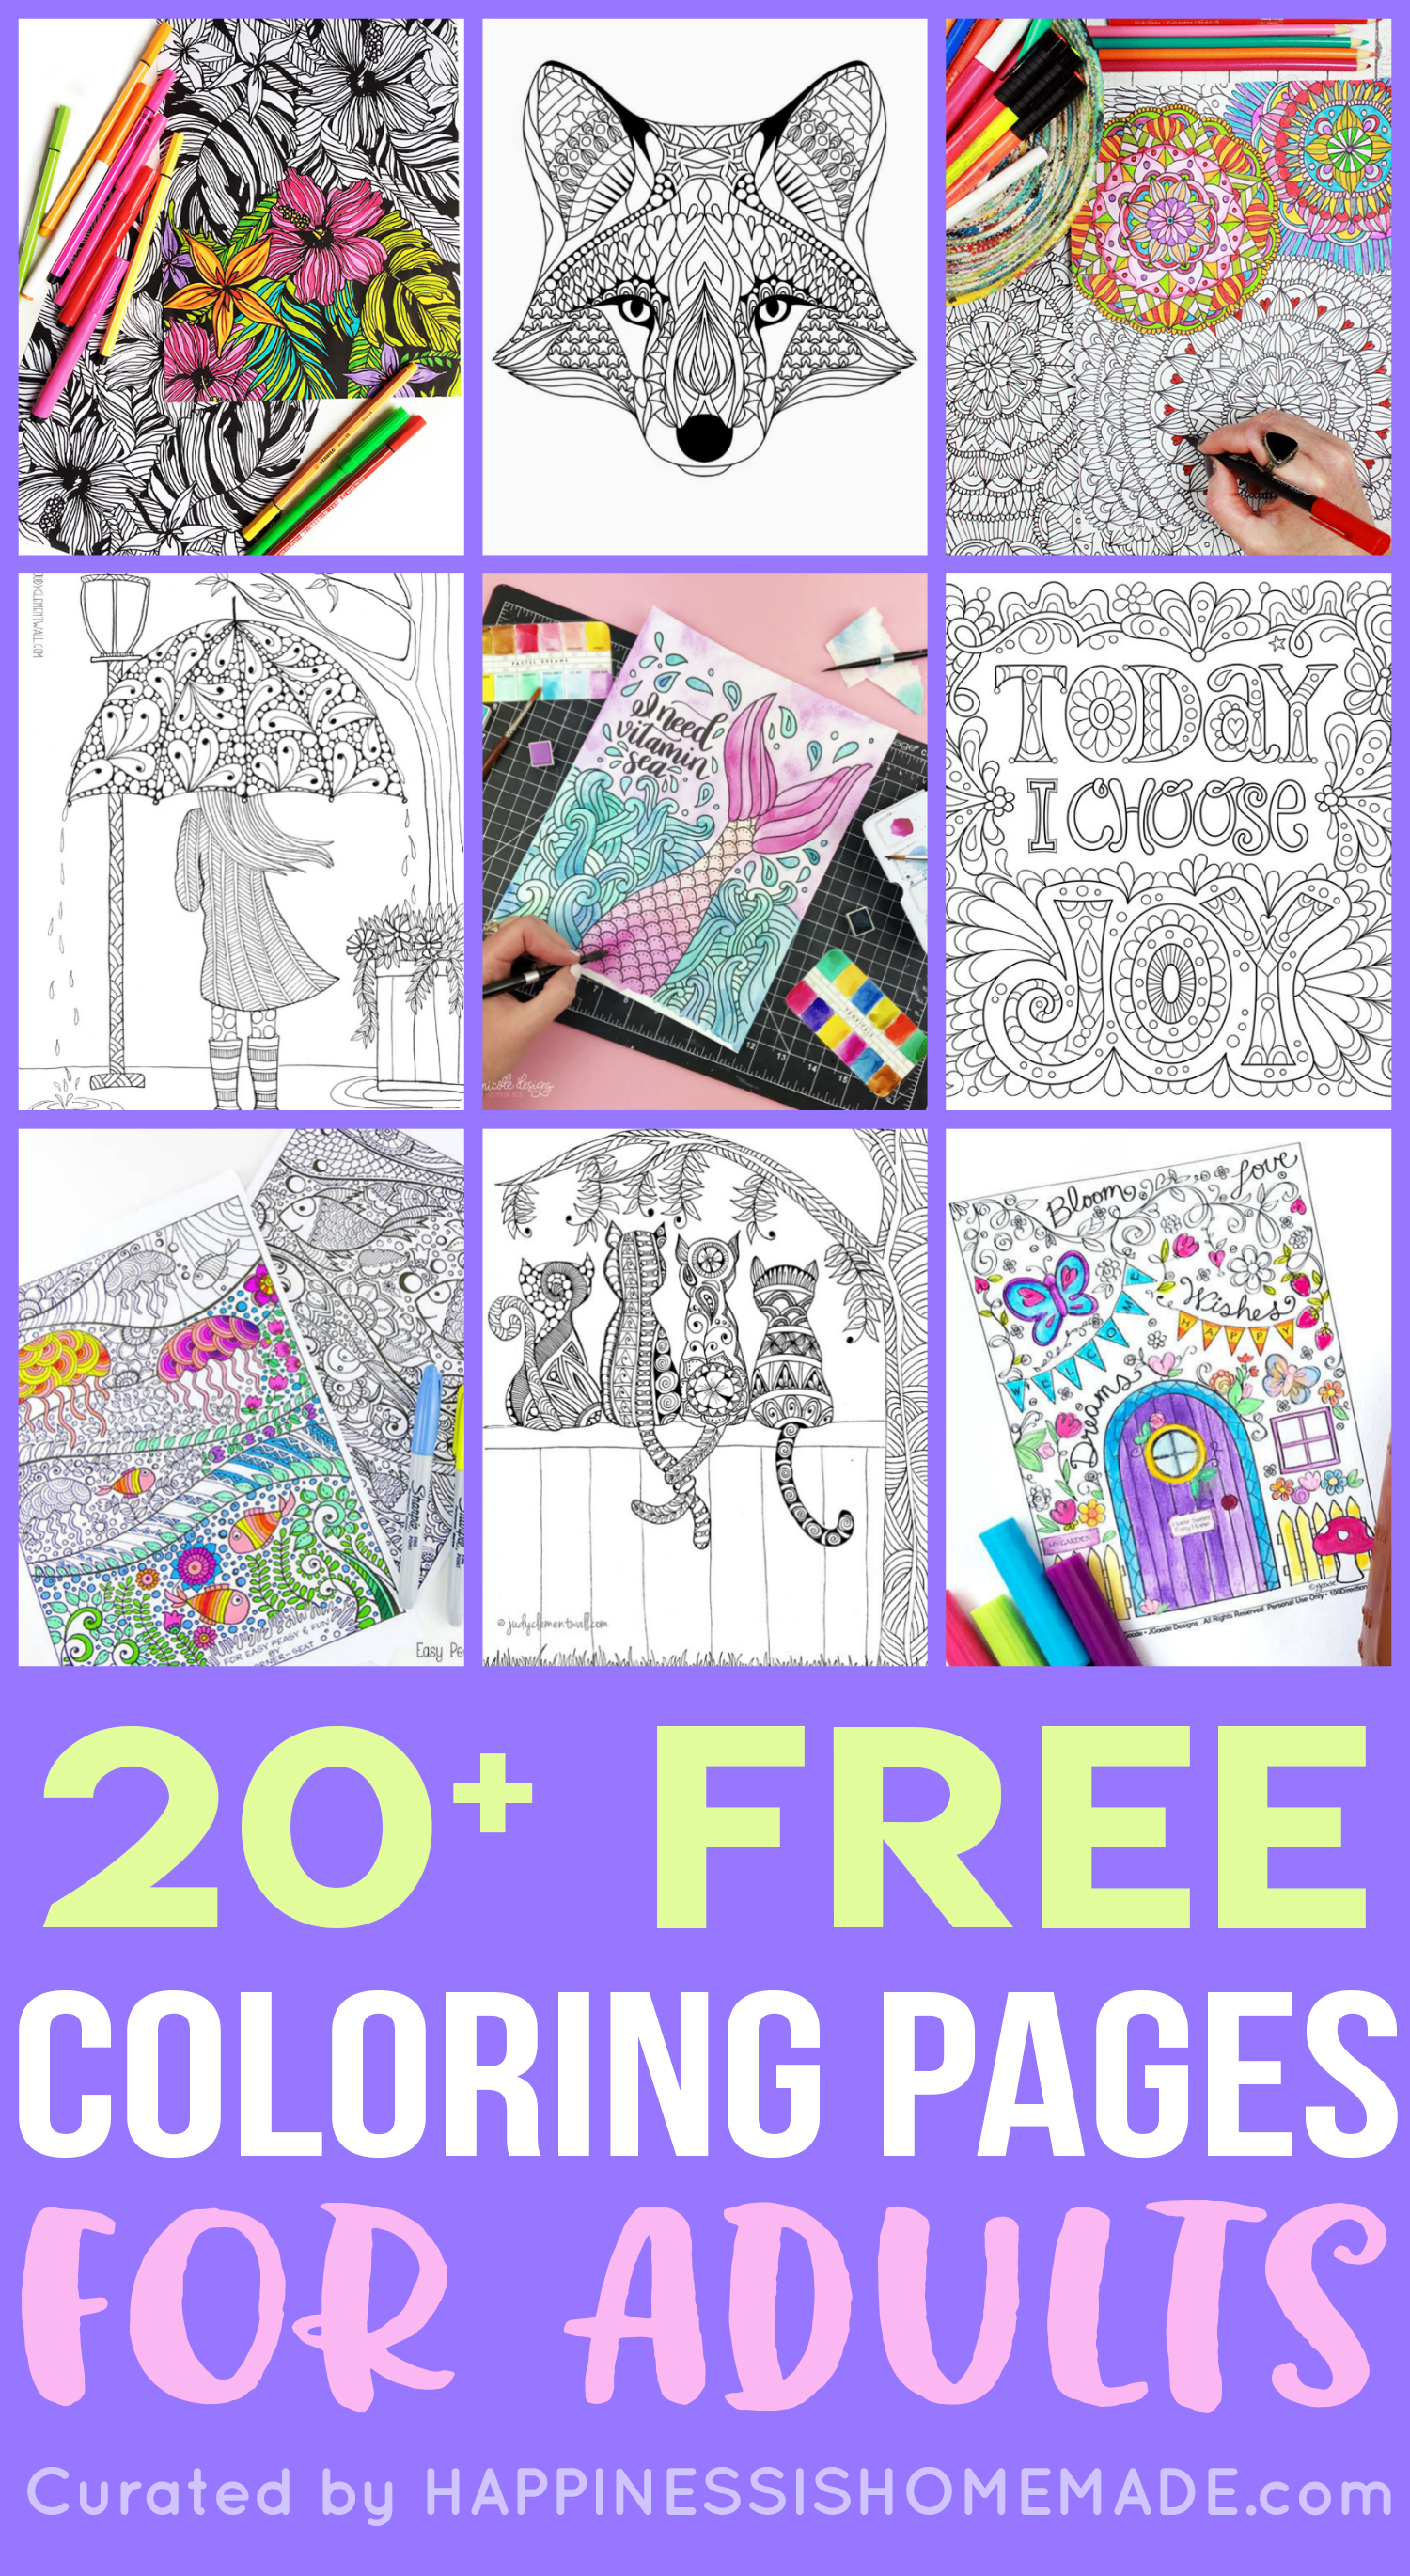 Free adult coloring pages are a great way to relax unwind and de